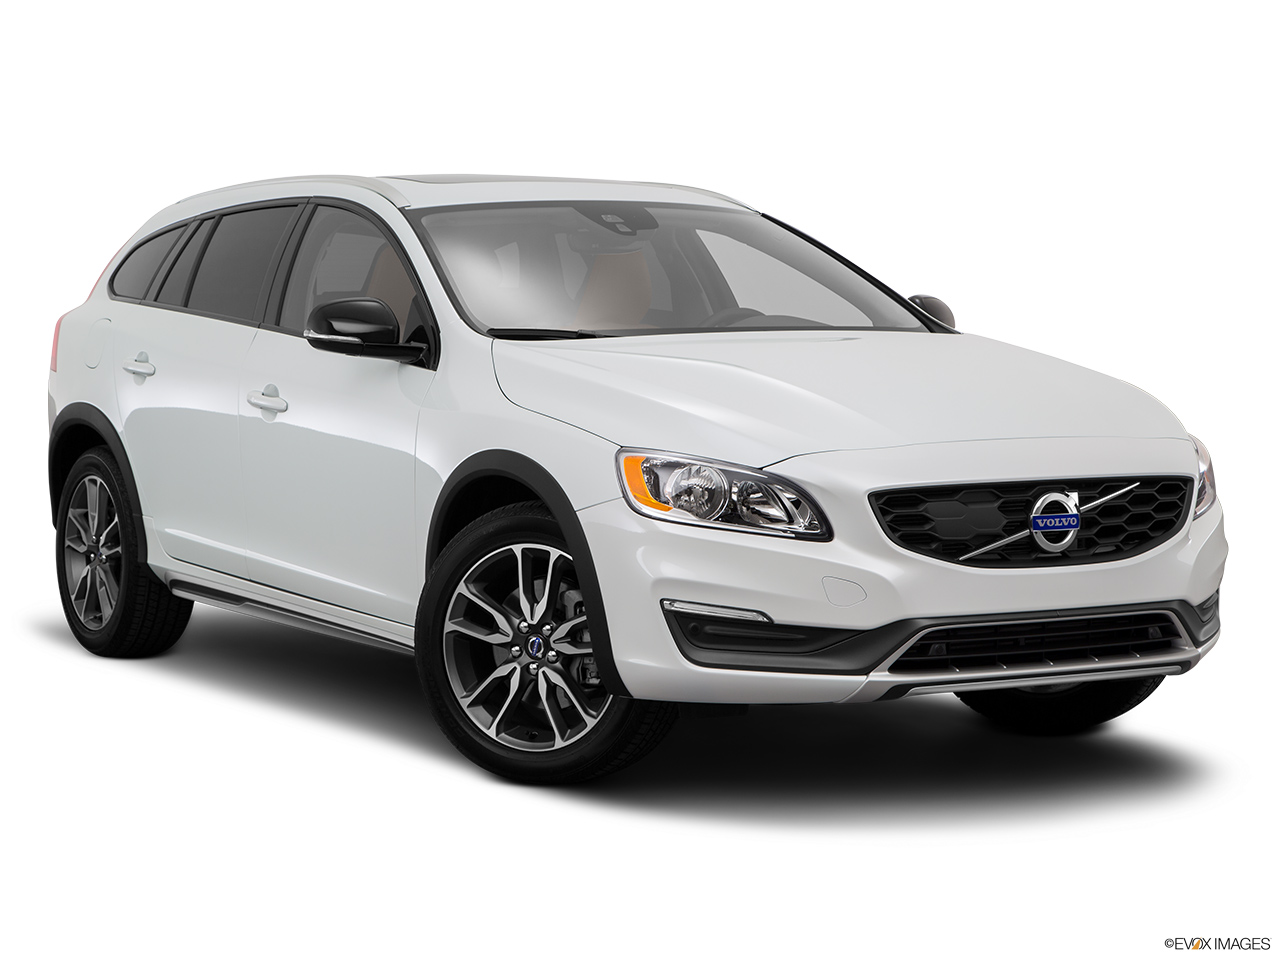 2015 Volvo V60 Cross Country T5 AWD Front passenger 3/4 w/ wheels turned.